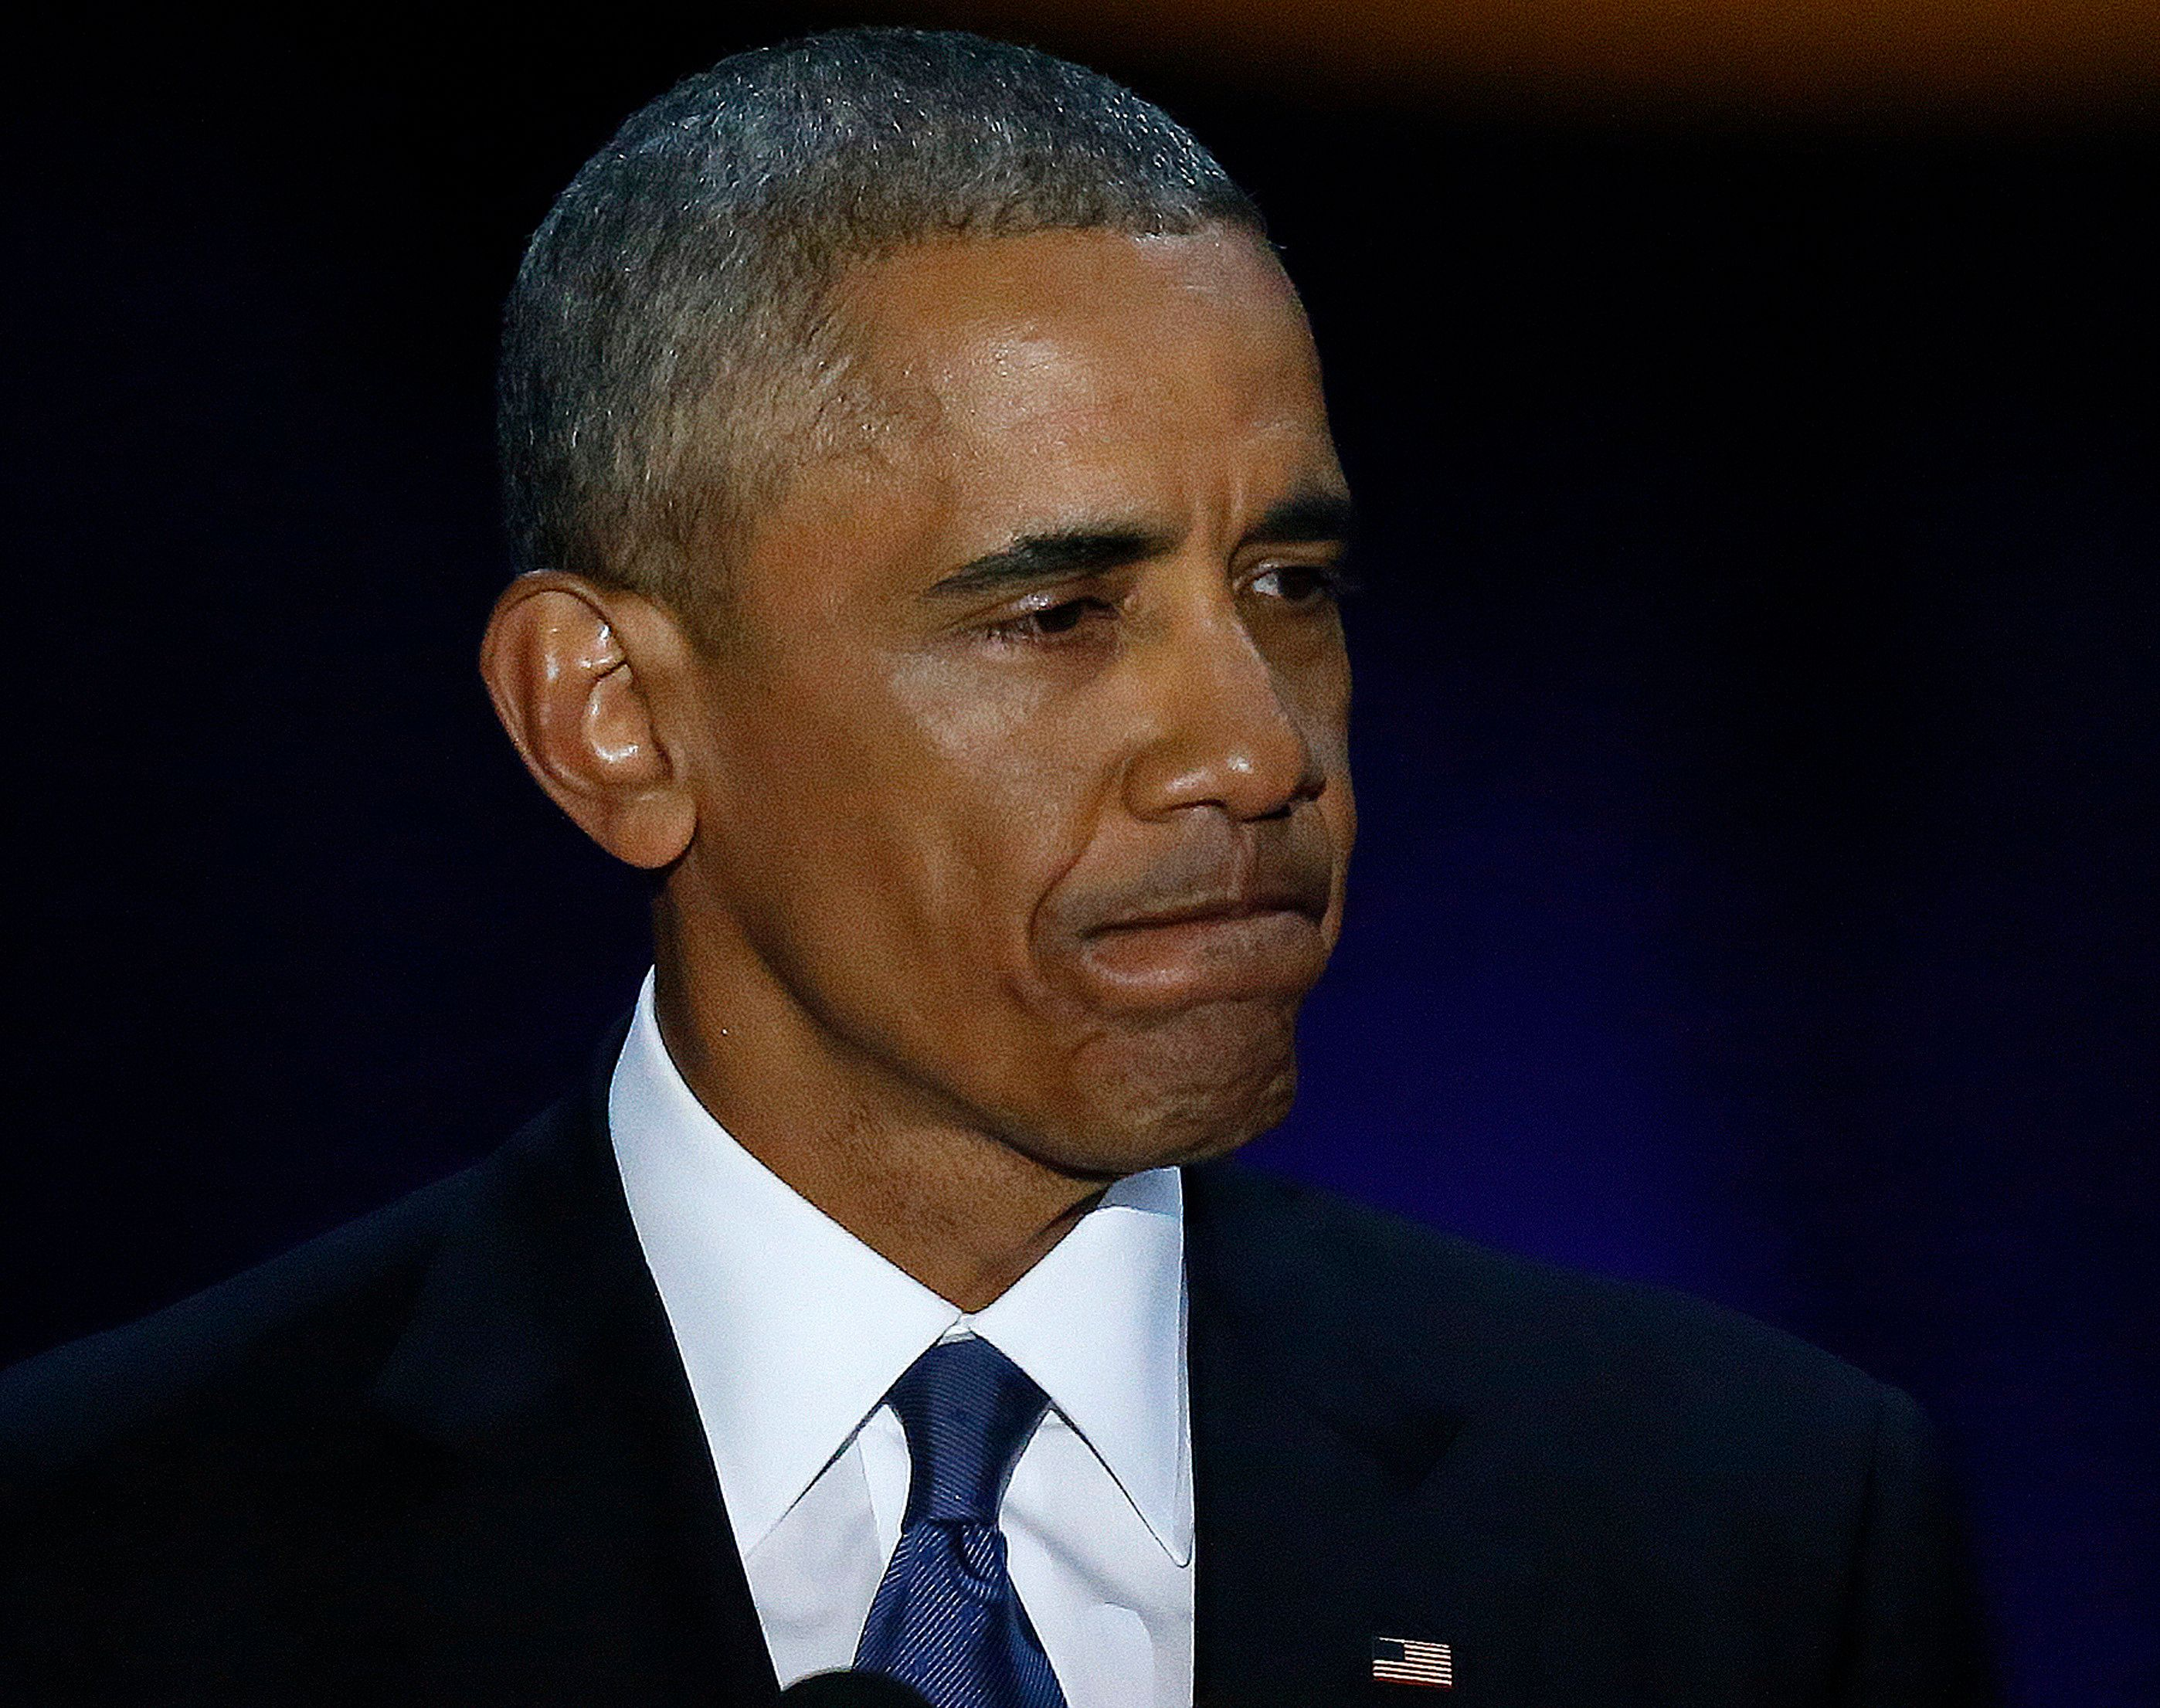 Barack Obama became visibly emotional when he spoke to his family during his farewell